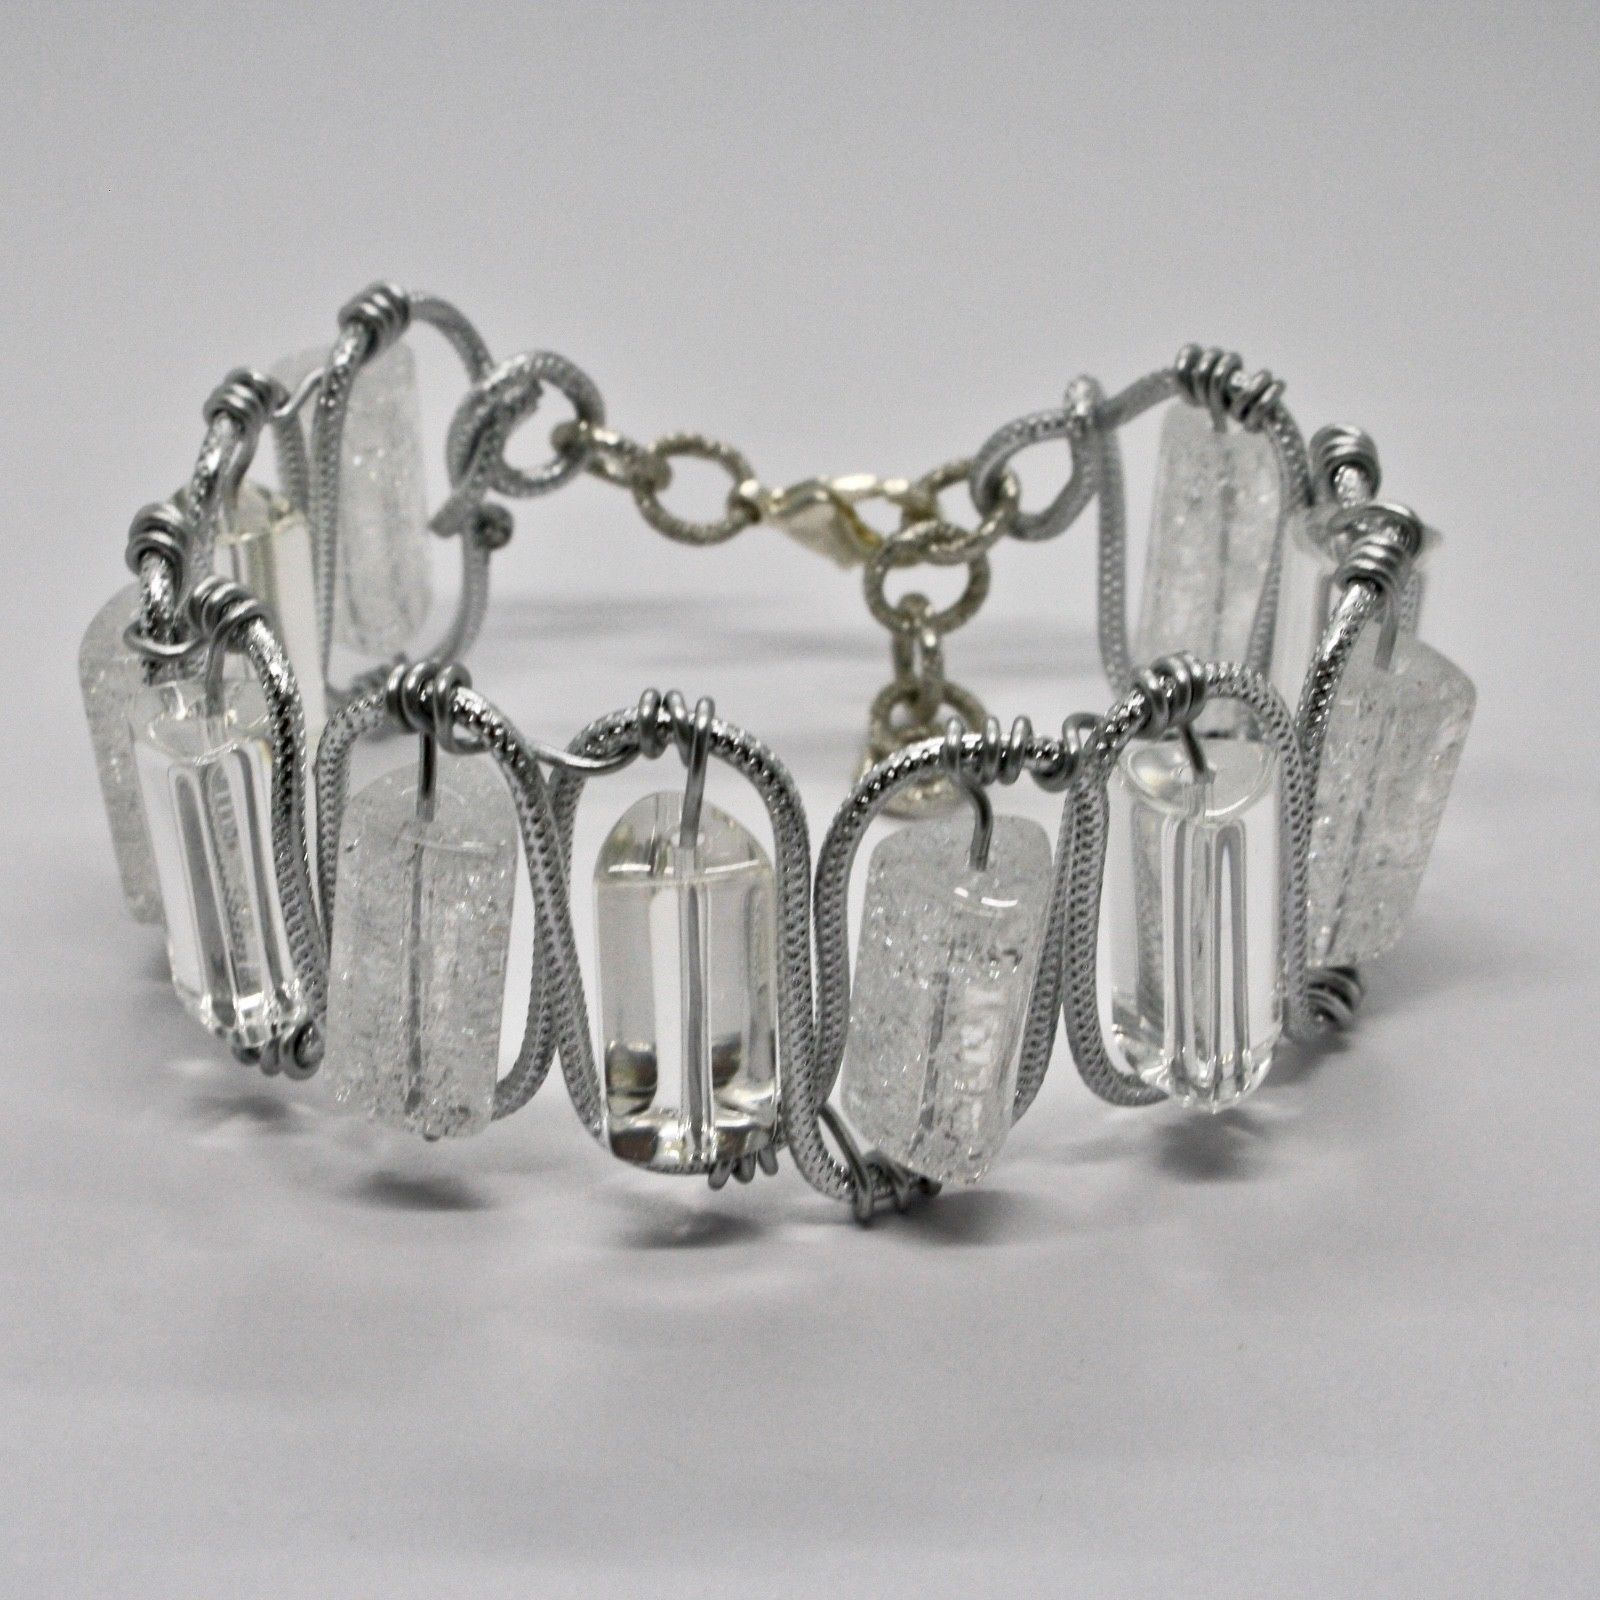 BRACELET THE ALUMINIUM RIGID WITH CRYSTAL CLEAR AND CRYSTAL CRACK